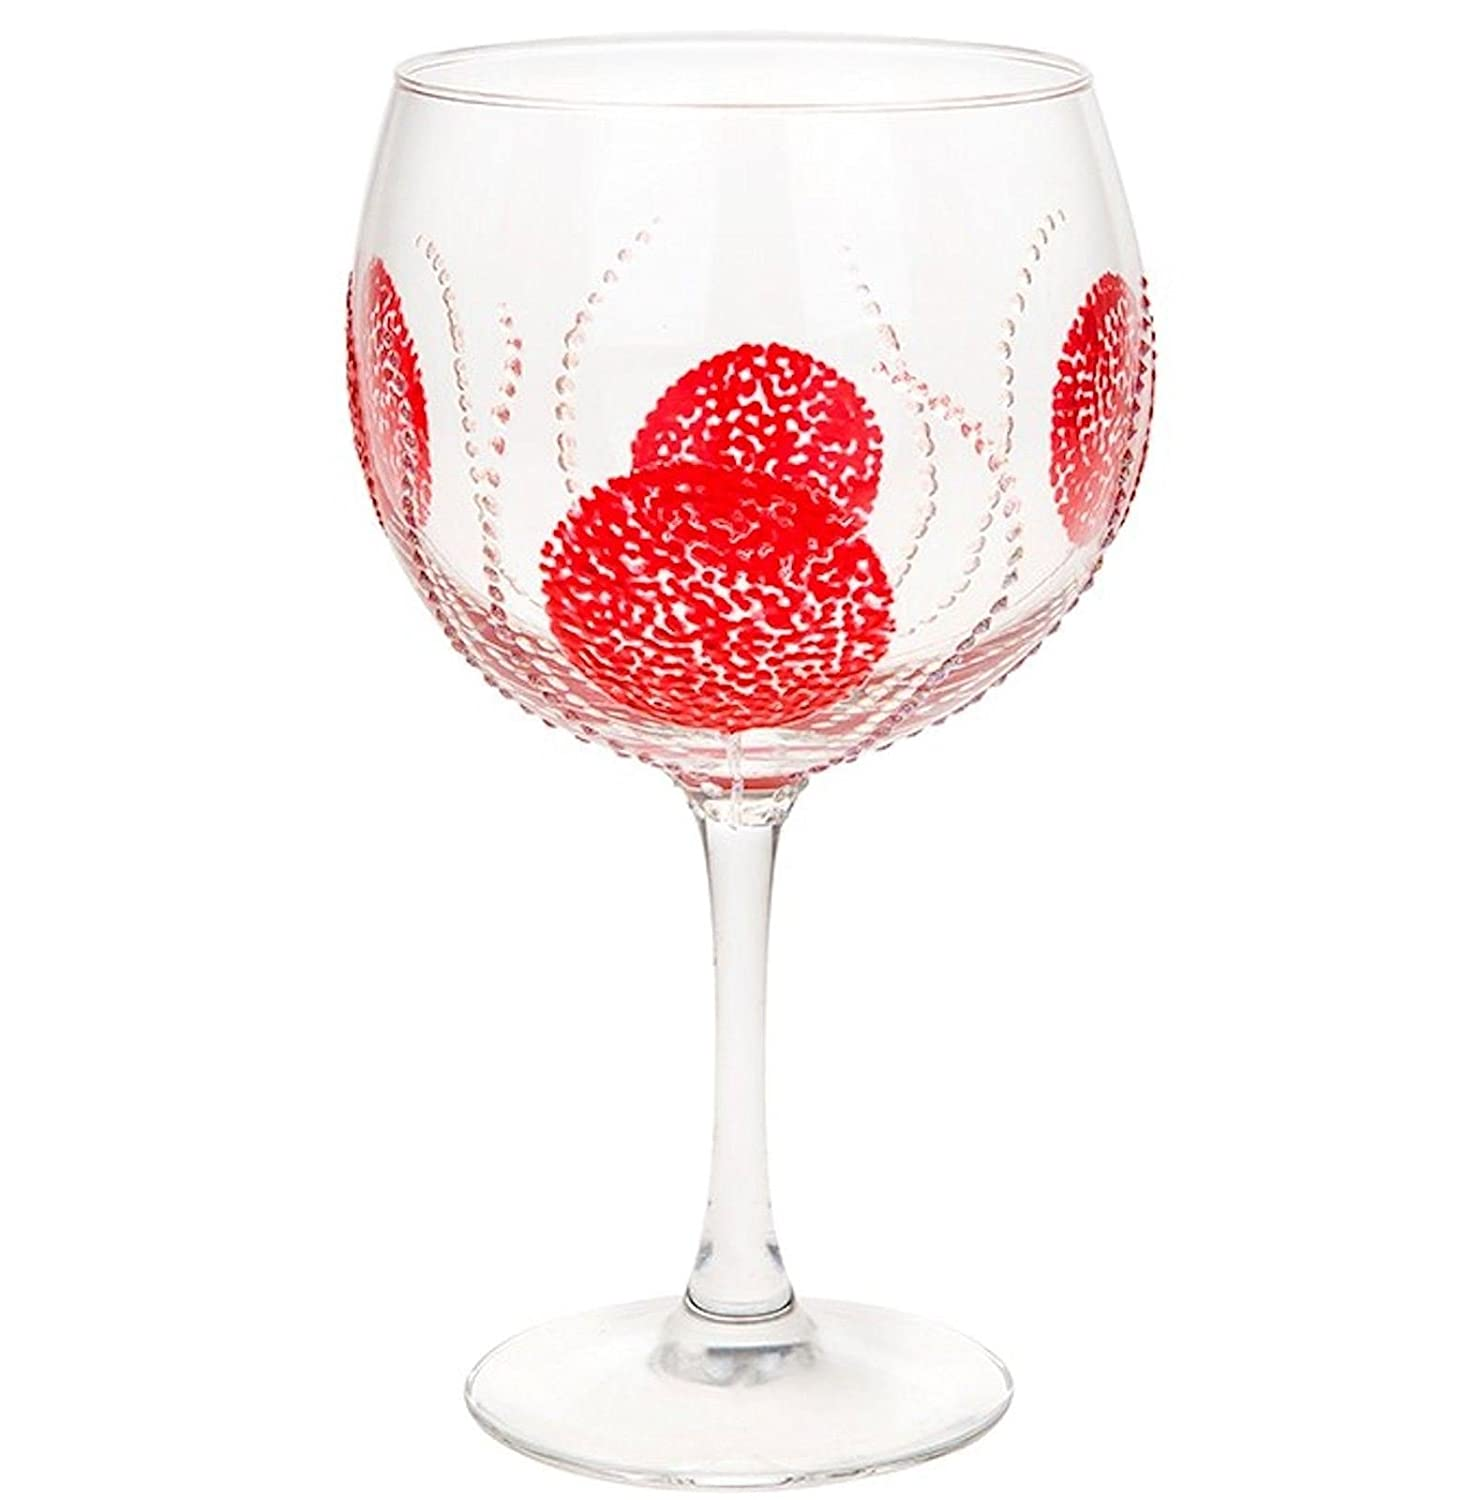 Sunny By Sue Large 600ml Gin /& Tonic Goblet Hand Decorated Gin Glass Various Designs Red Burst